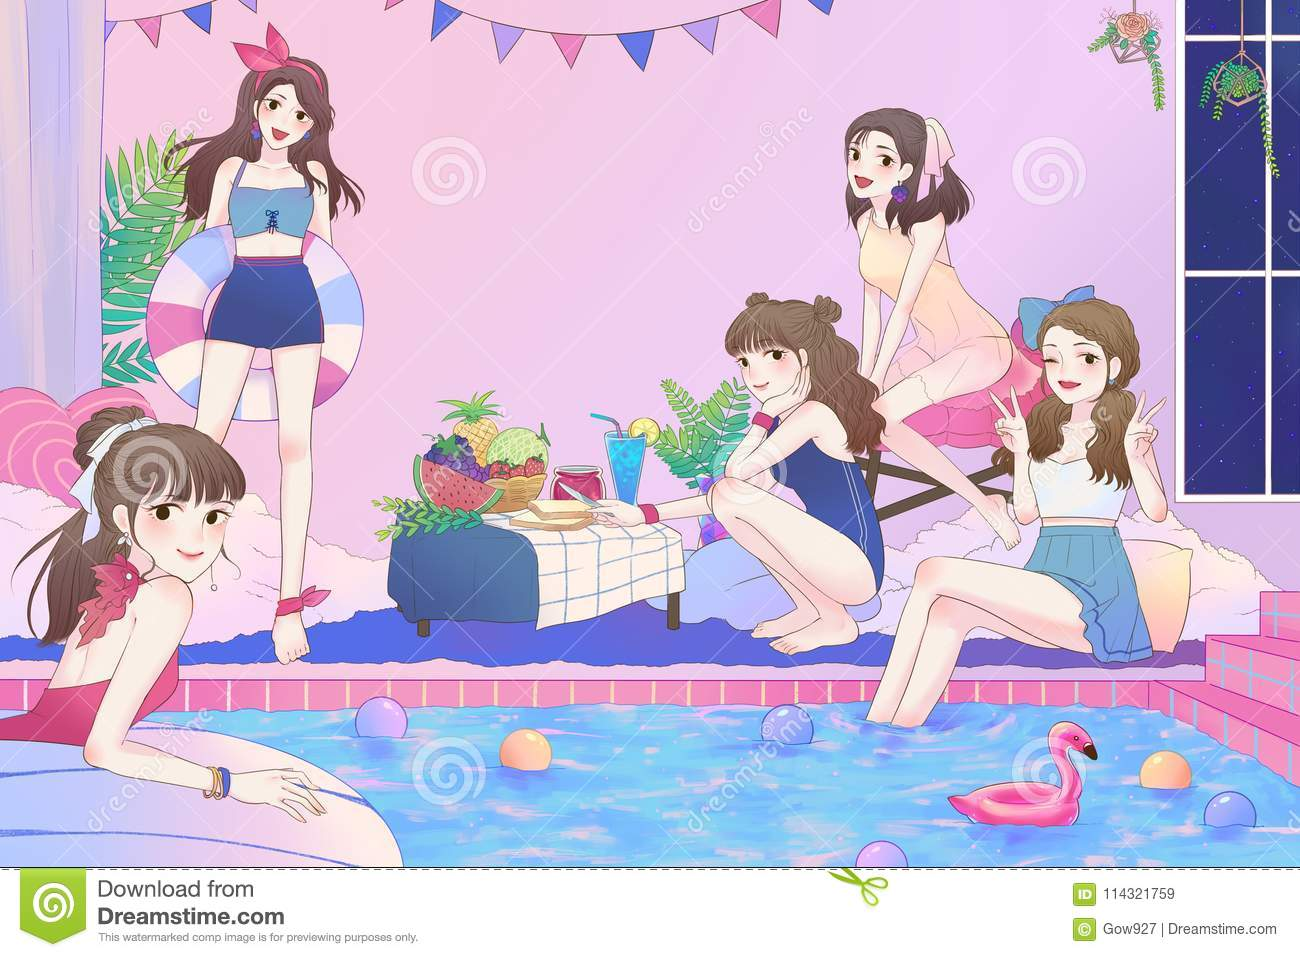 Cartoon illustration of 5 cute Asian teen girls having fun and pool party in the large bathroom with swimsuit in vintage fashion